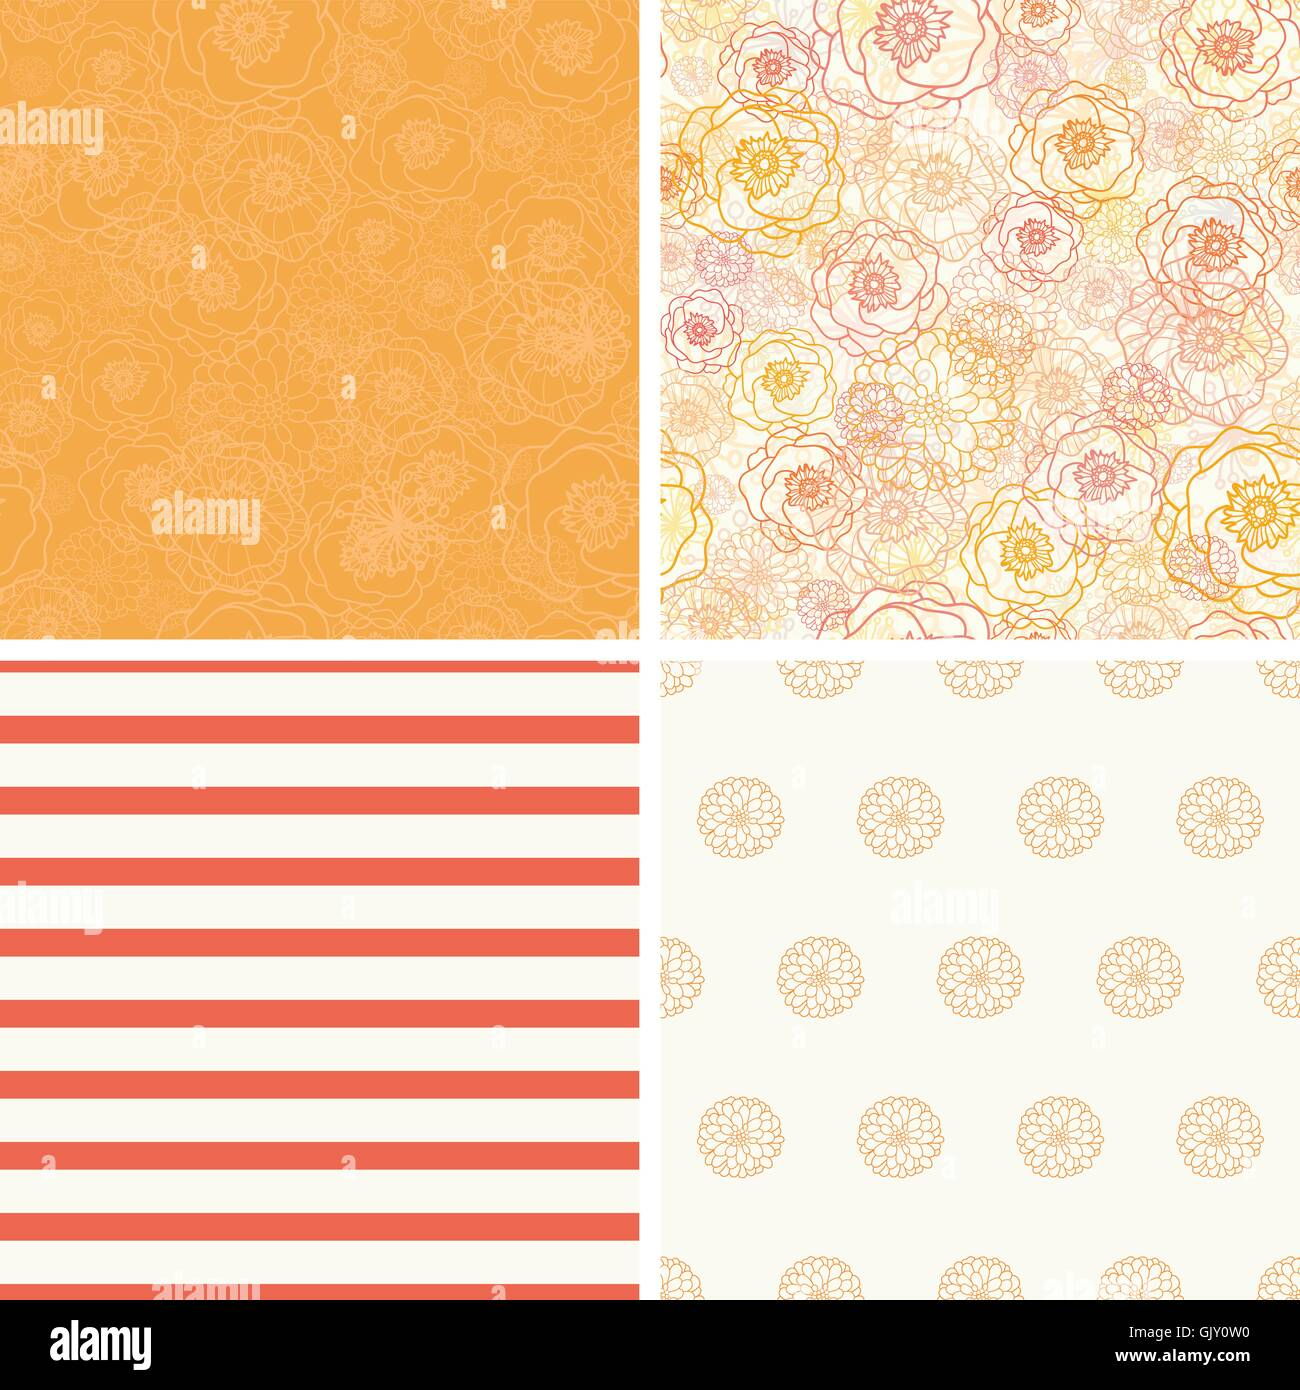 Vector Warm Flowers Set of Four Matching Repeat Patterns - Stock Image